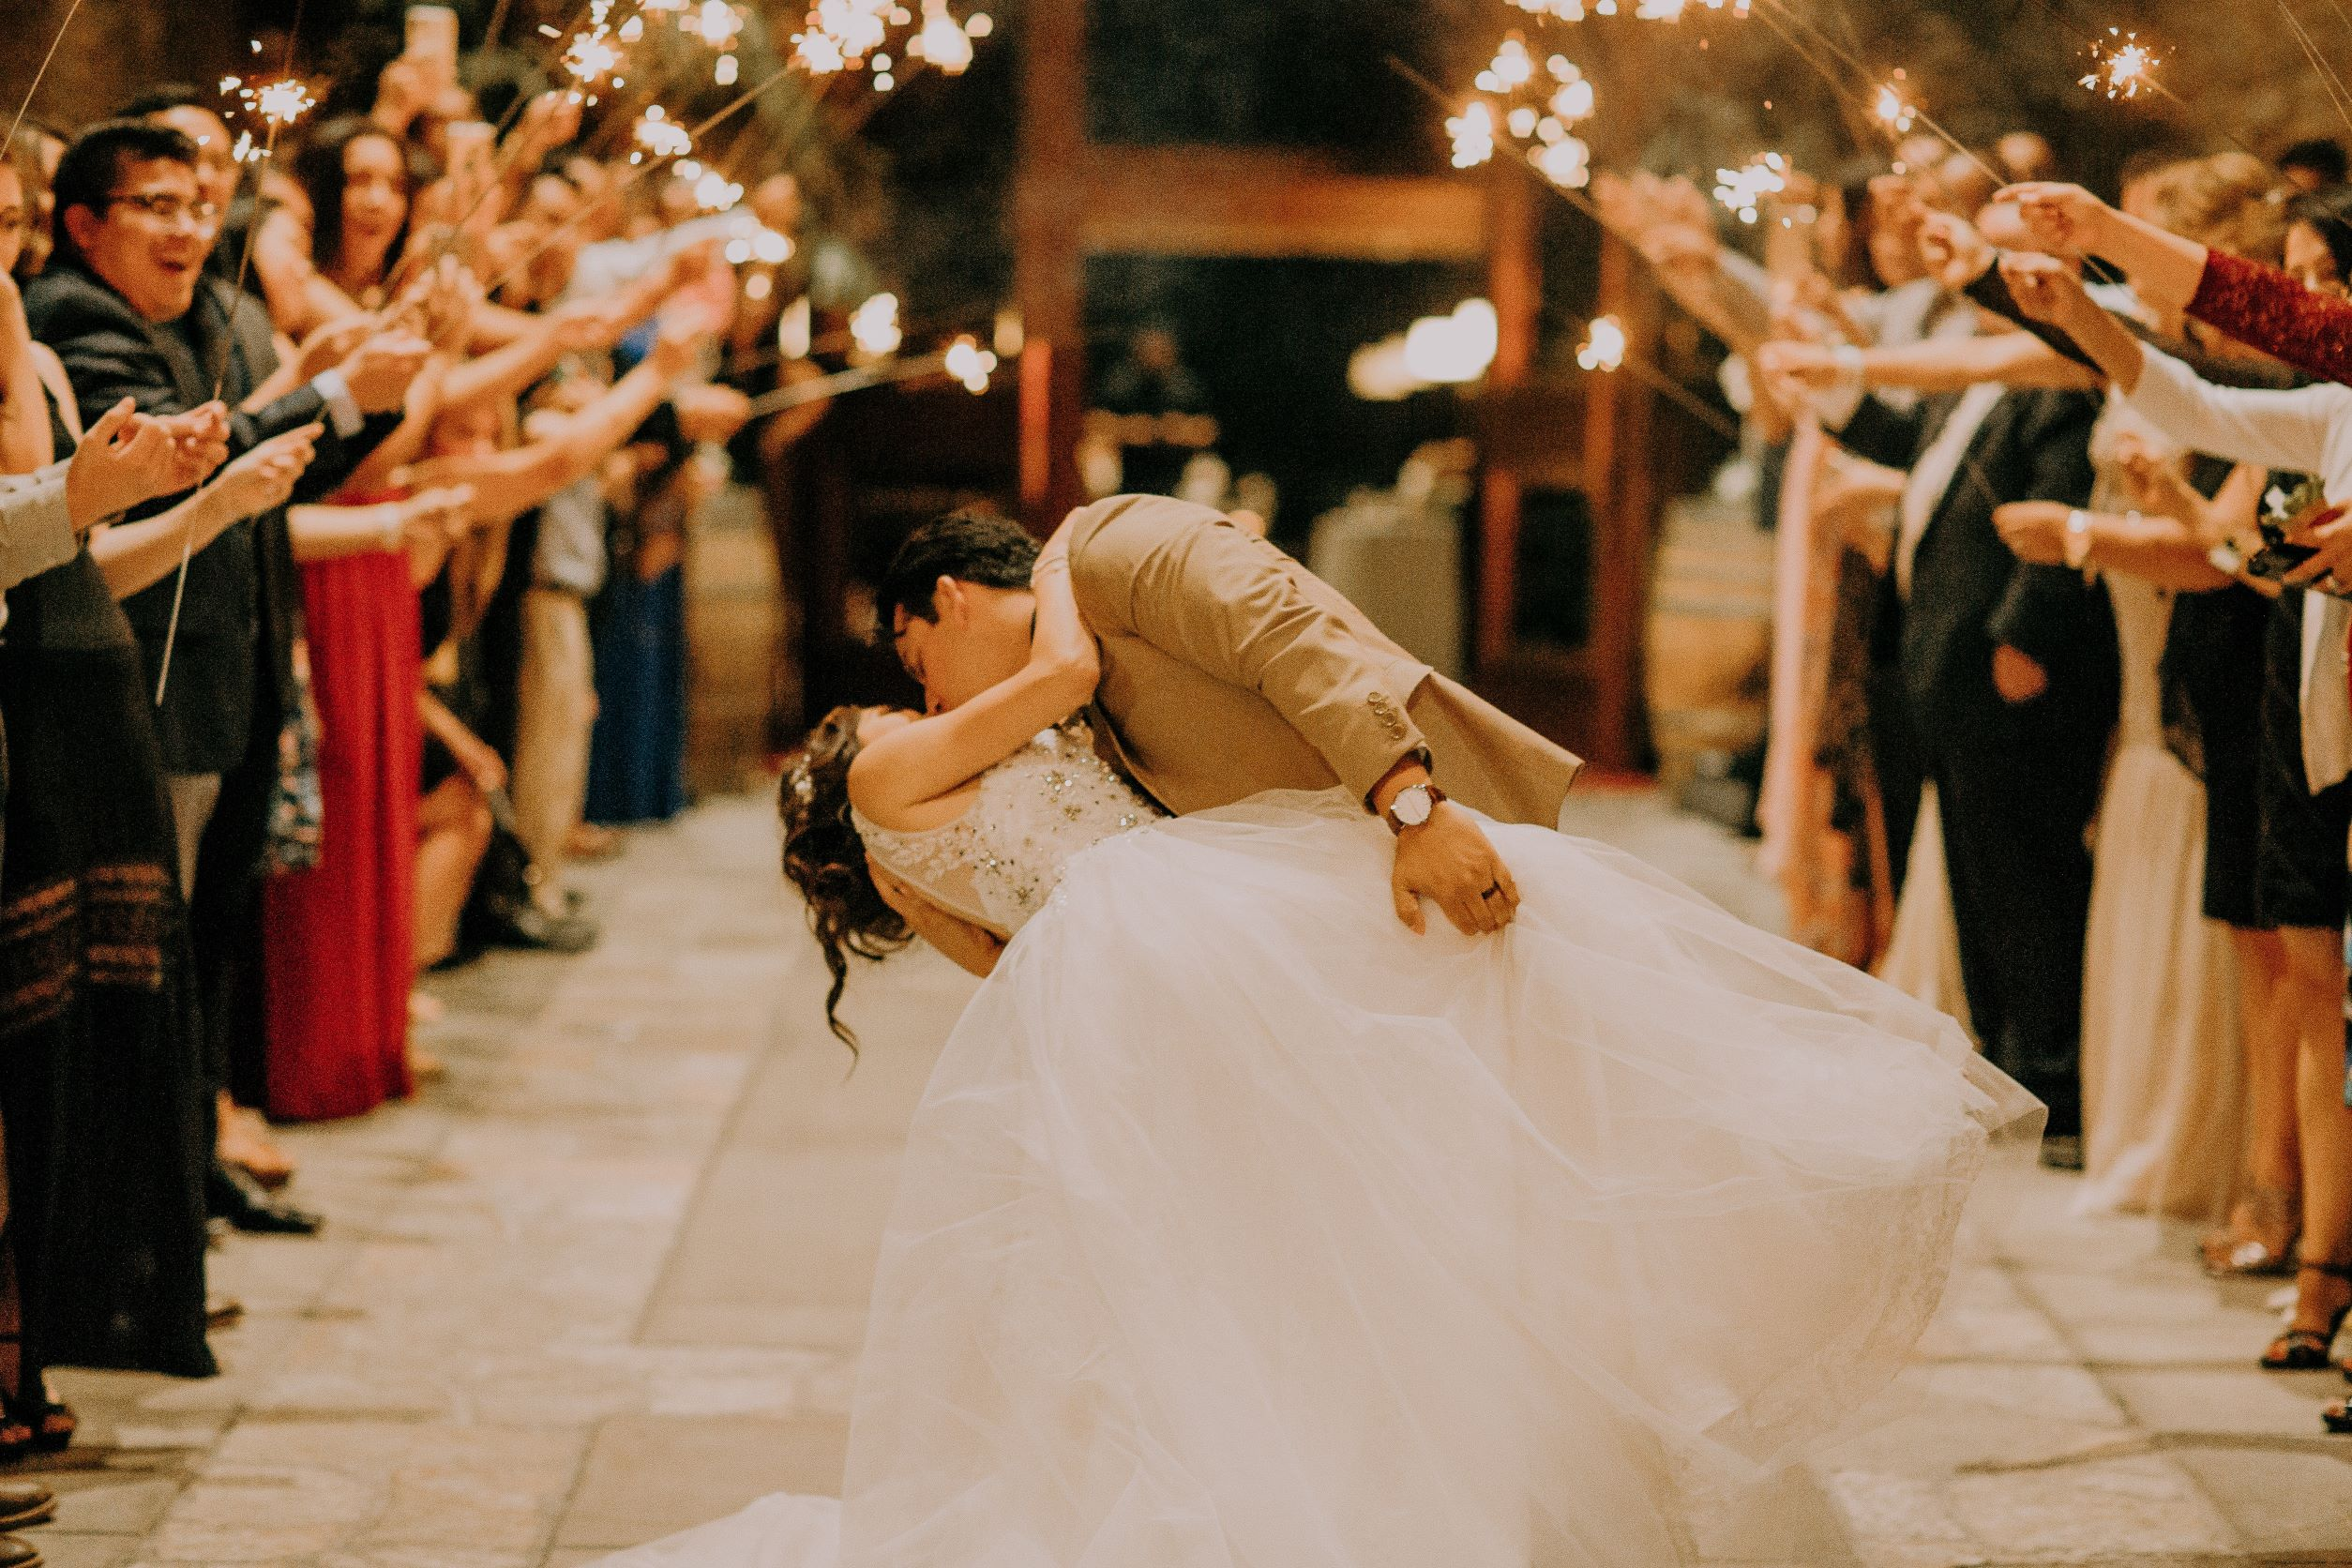 Dancing down the aisle